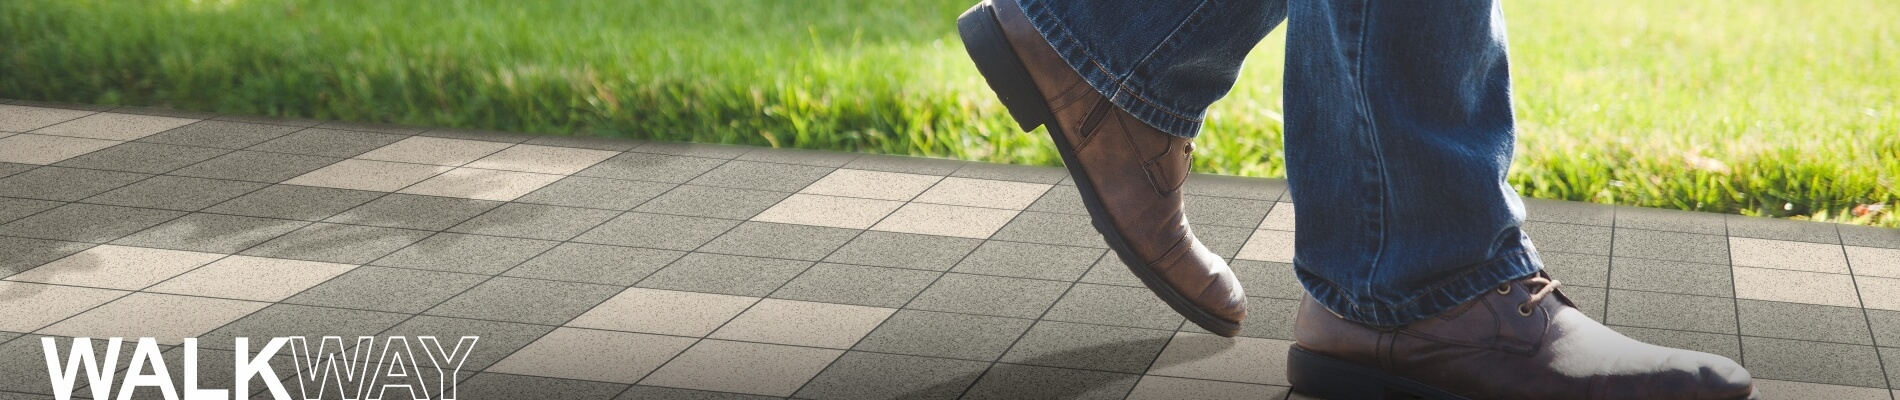 walkway tiles manufacturer